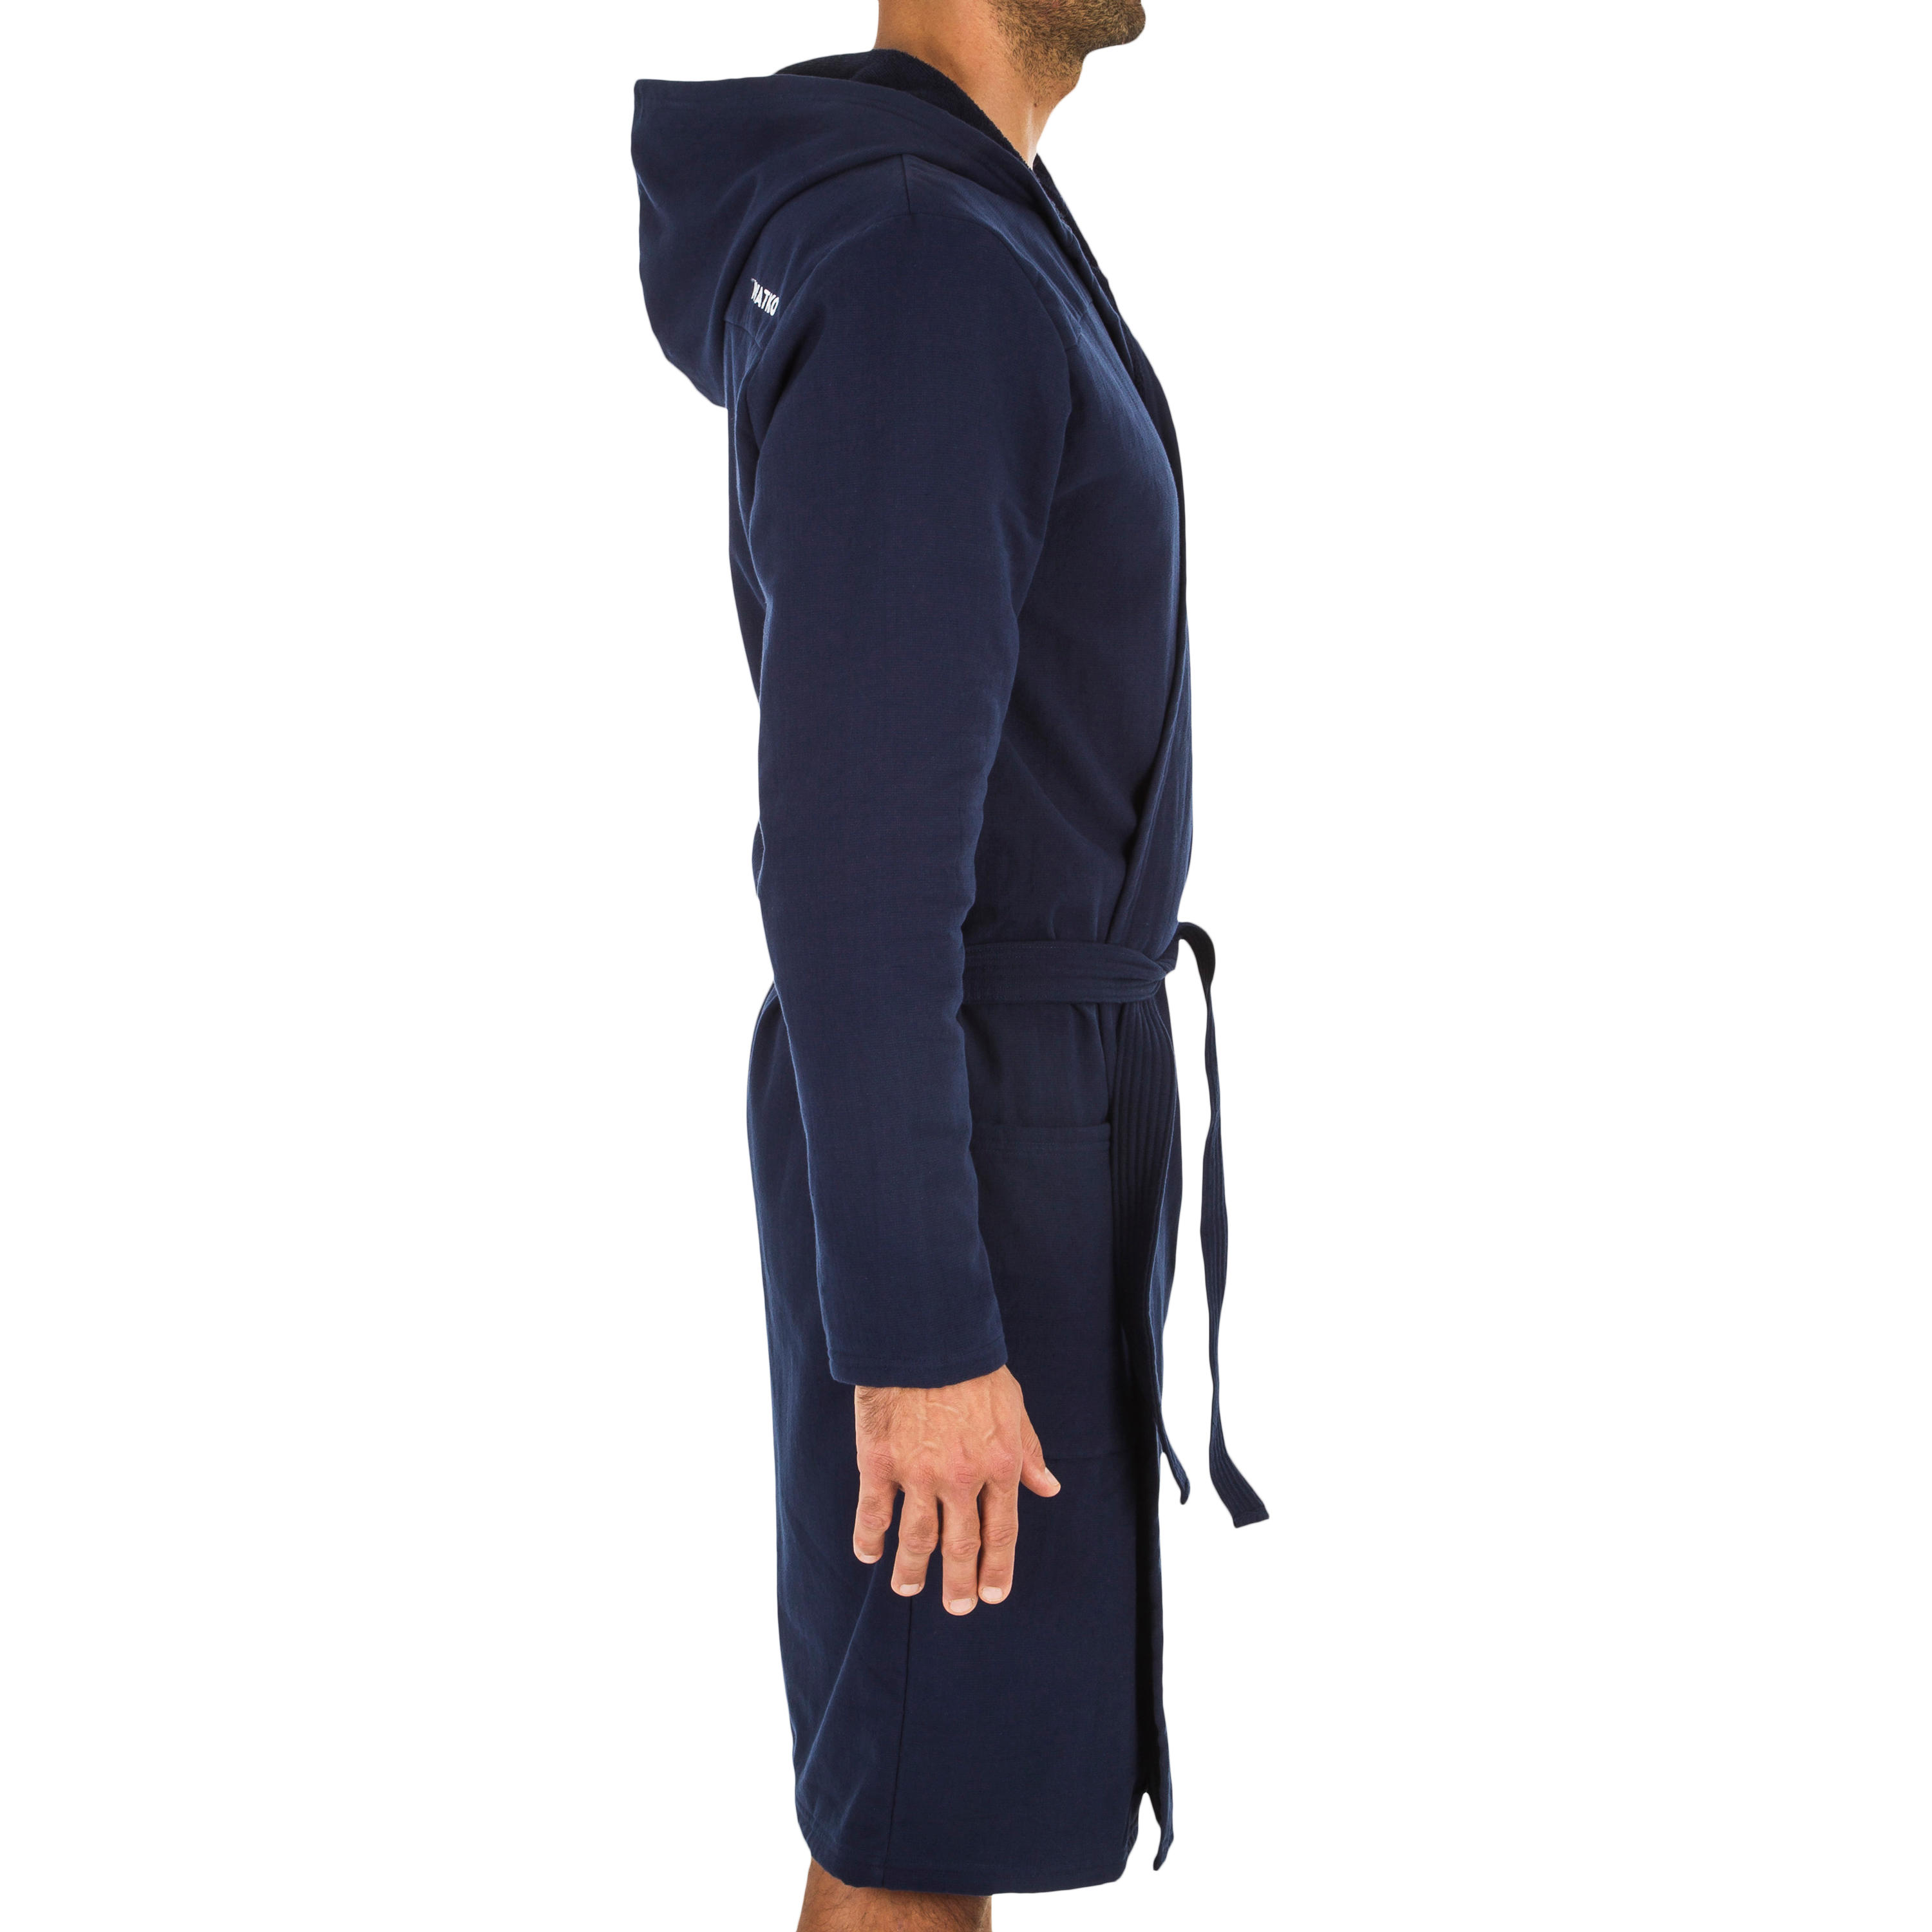 Home Way Men/'s Cotton Hooded Robe Thin Navy Size L